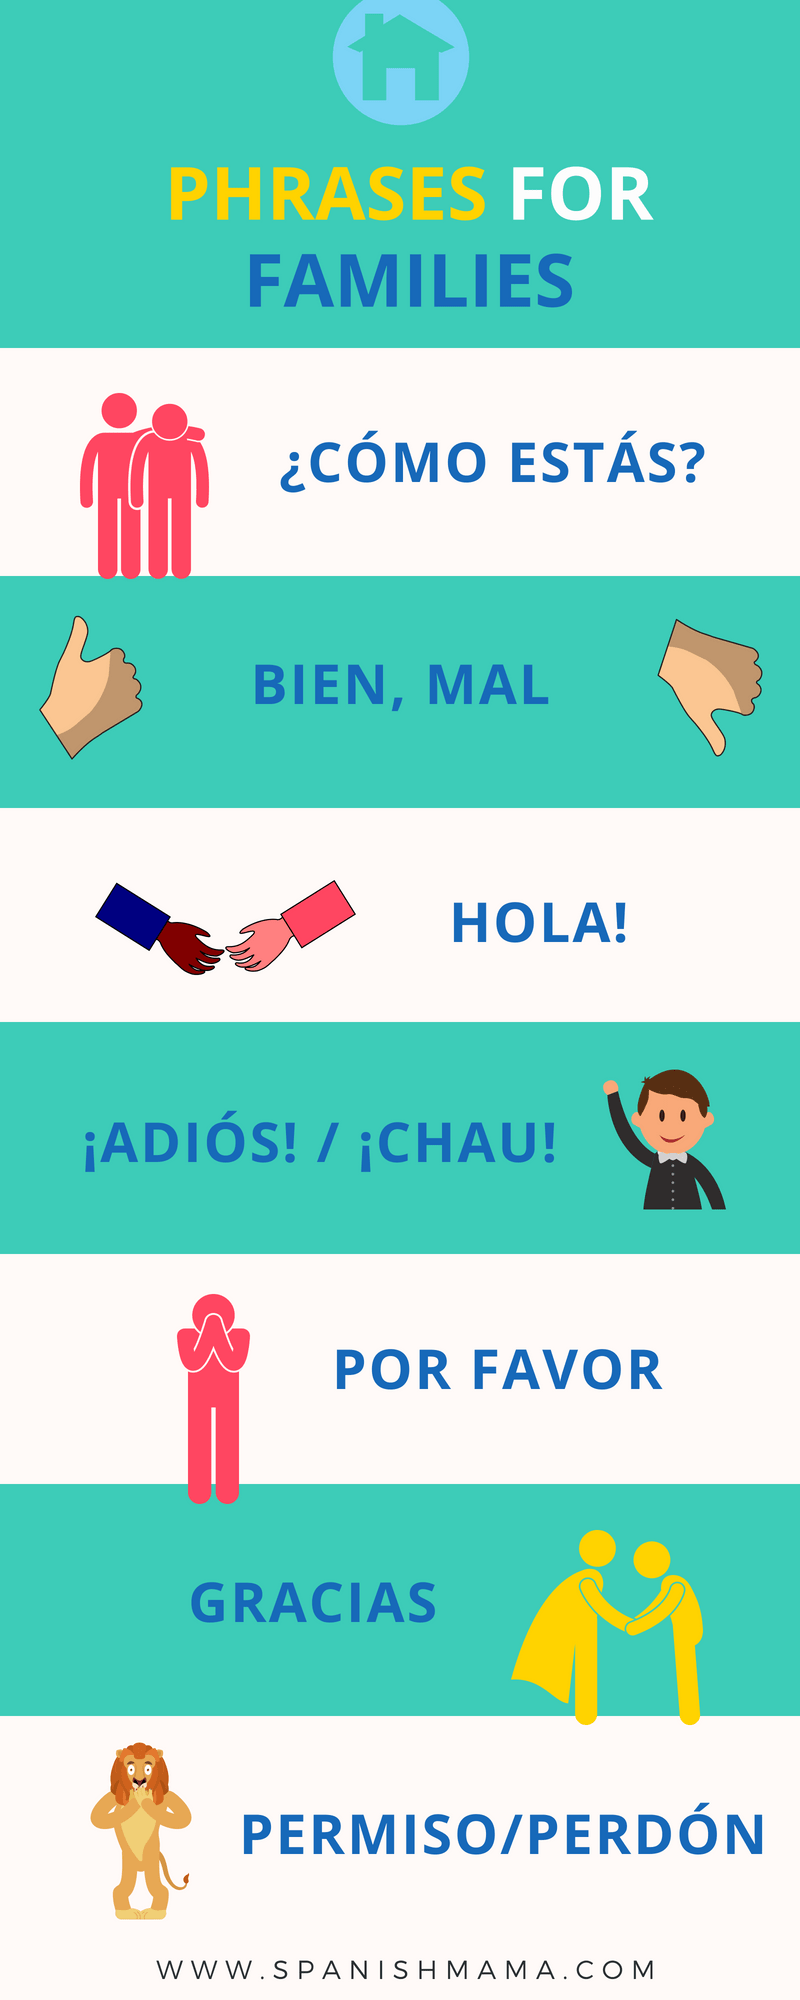 Spanish Resources Archives - SPANISH MAMA